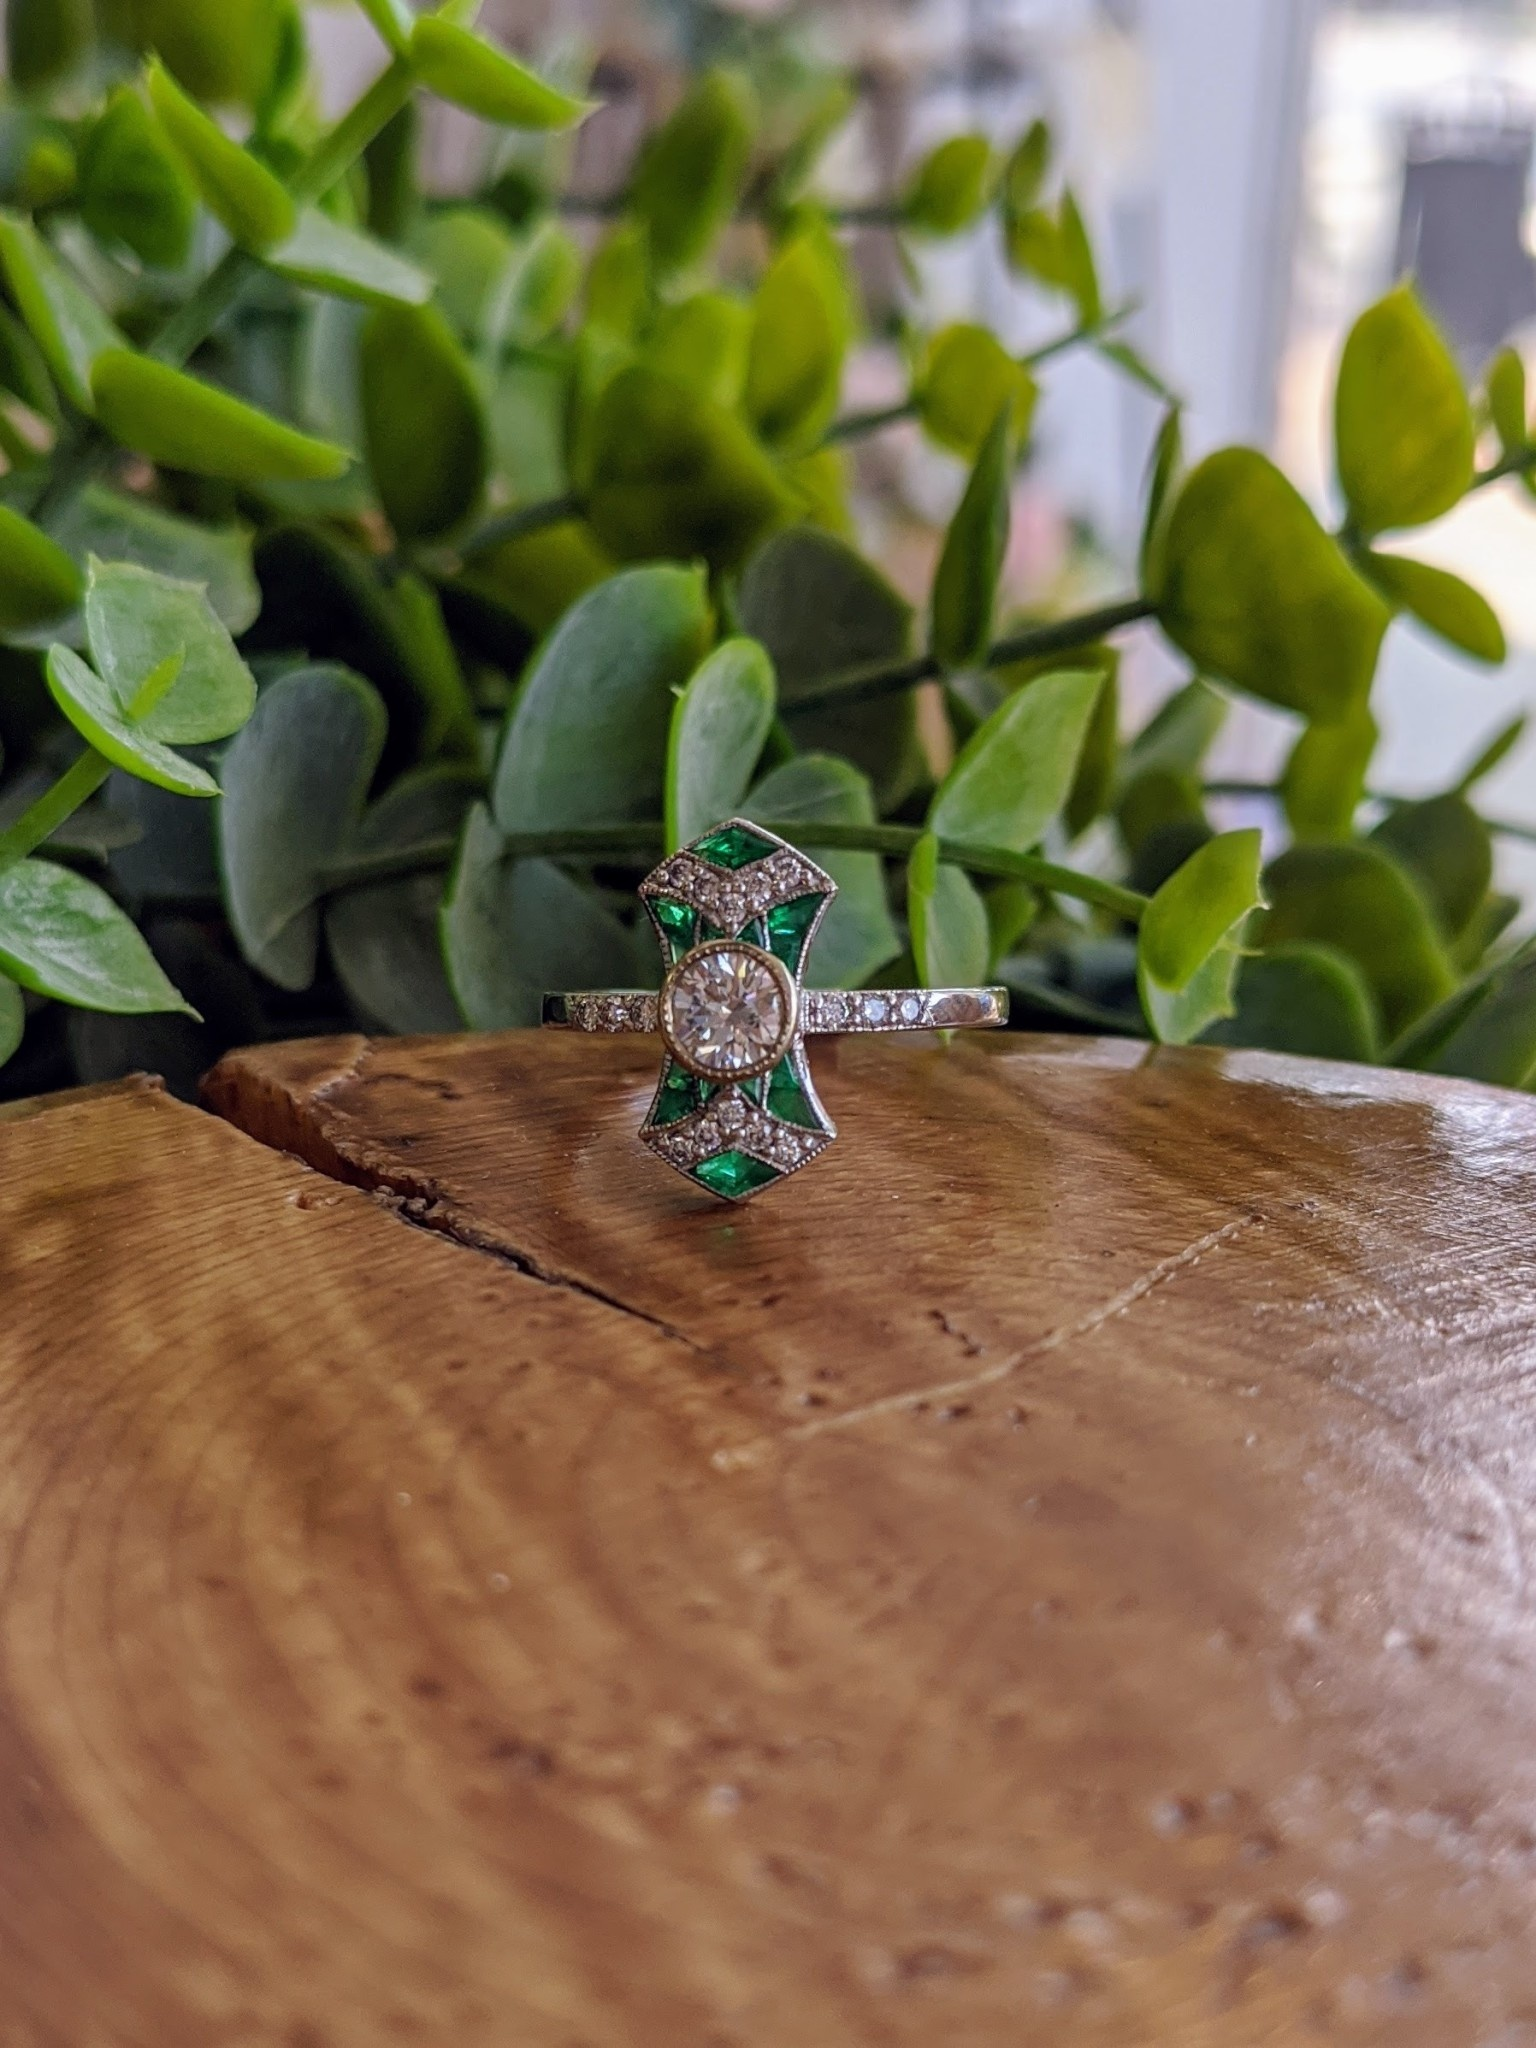 14K White Gold Bowtie Diamond Ring with Emerald Accents